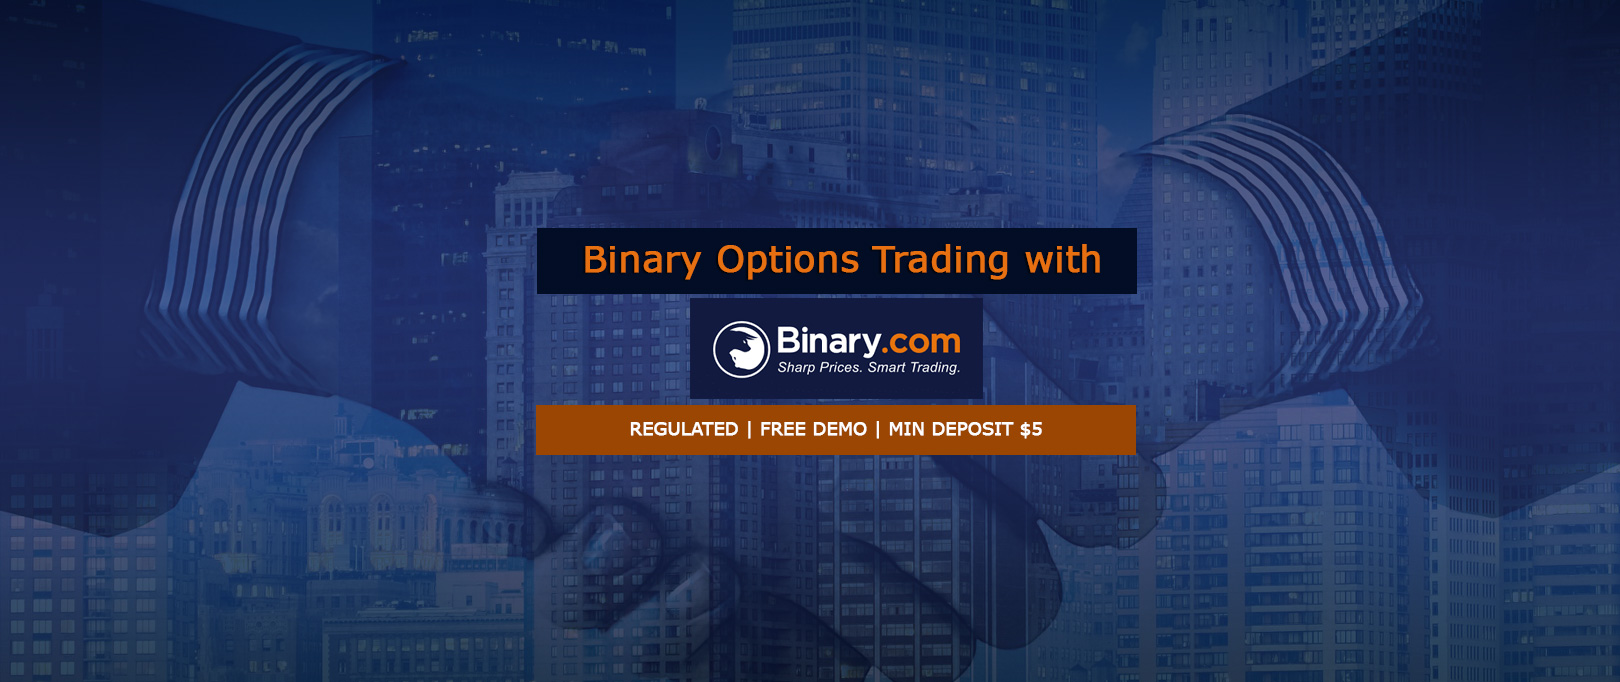 binary.com regulated binary option broker tutorial in English Sri Lanka by Prathilaba